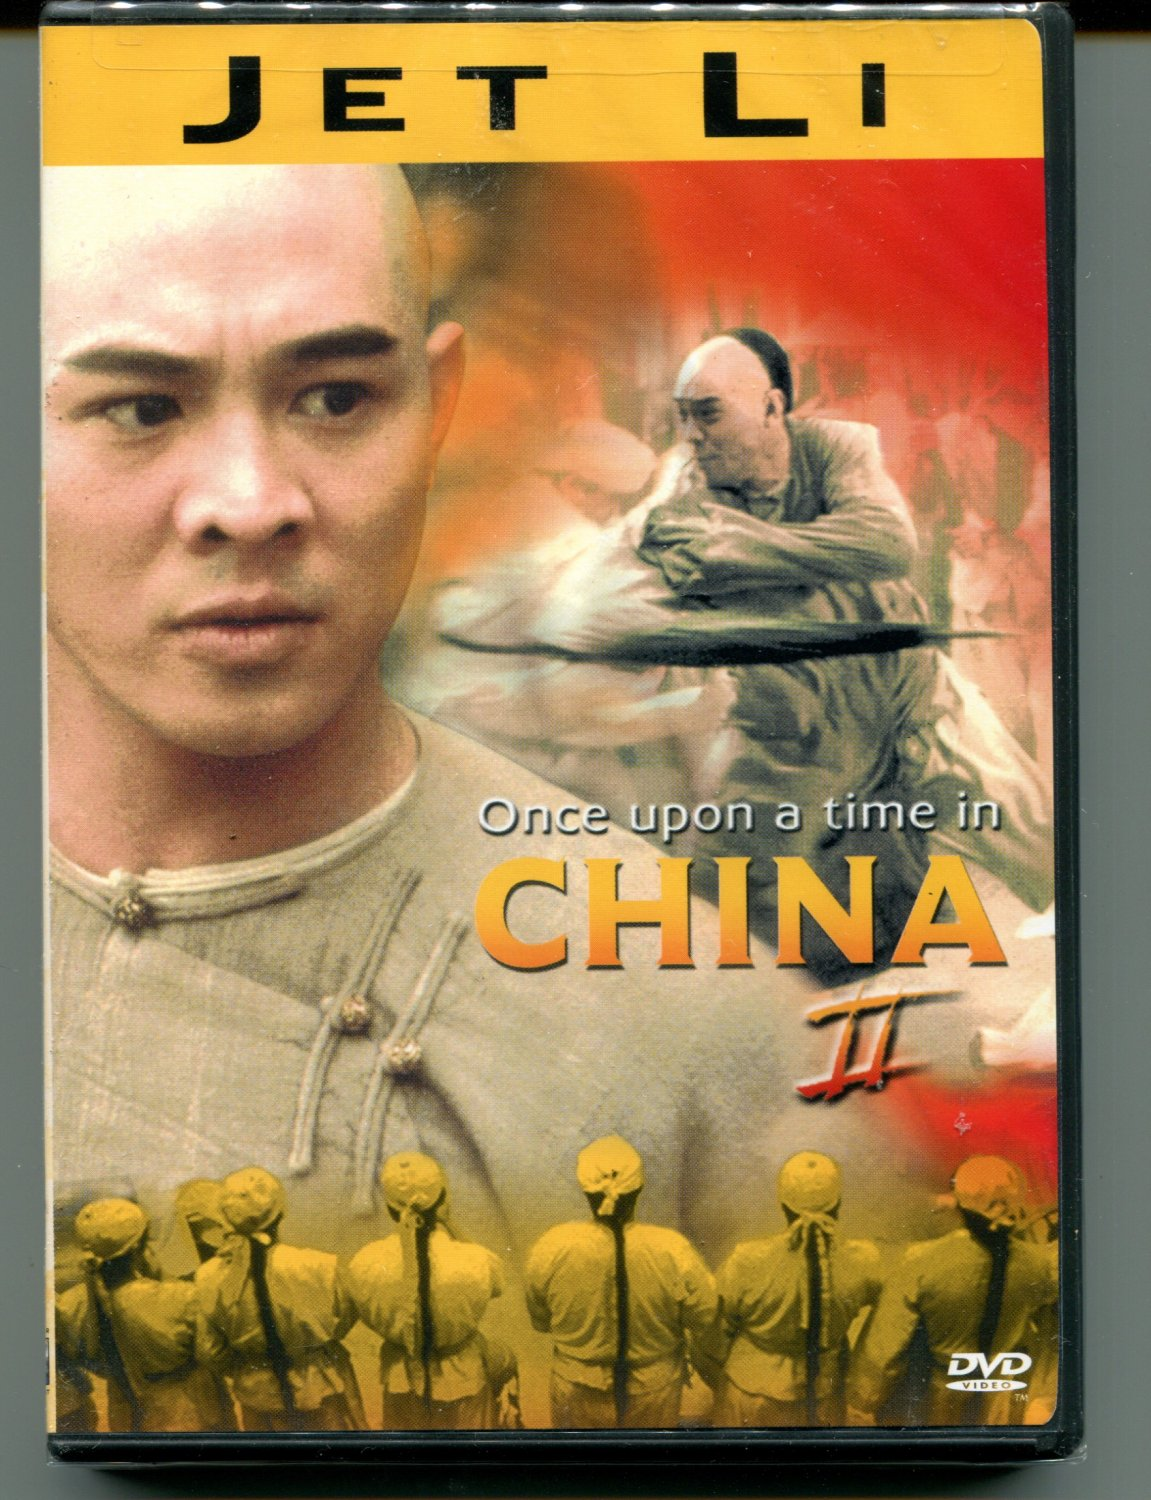 Once Upon a Time in China II (DVD, 2001)